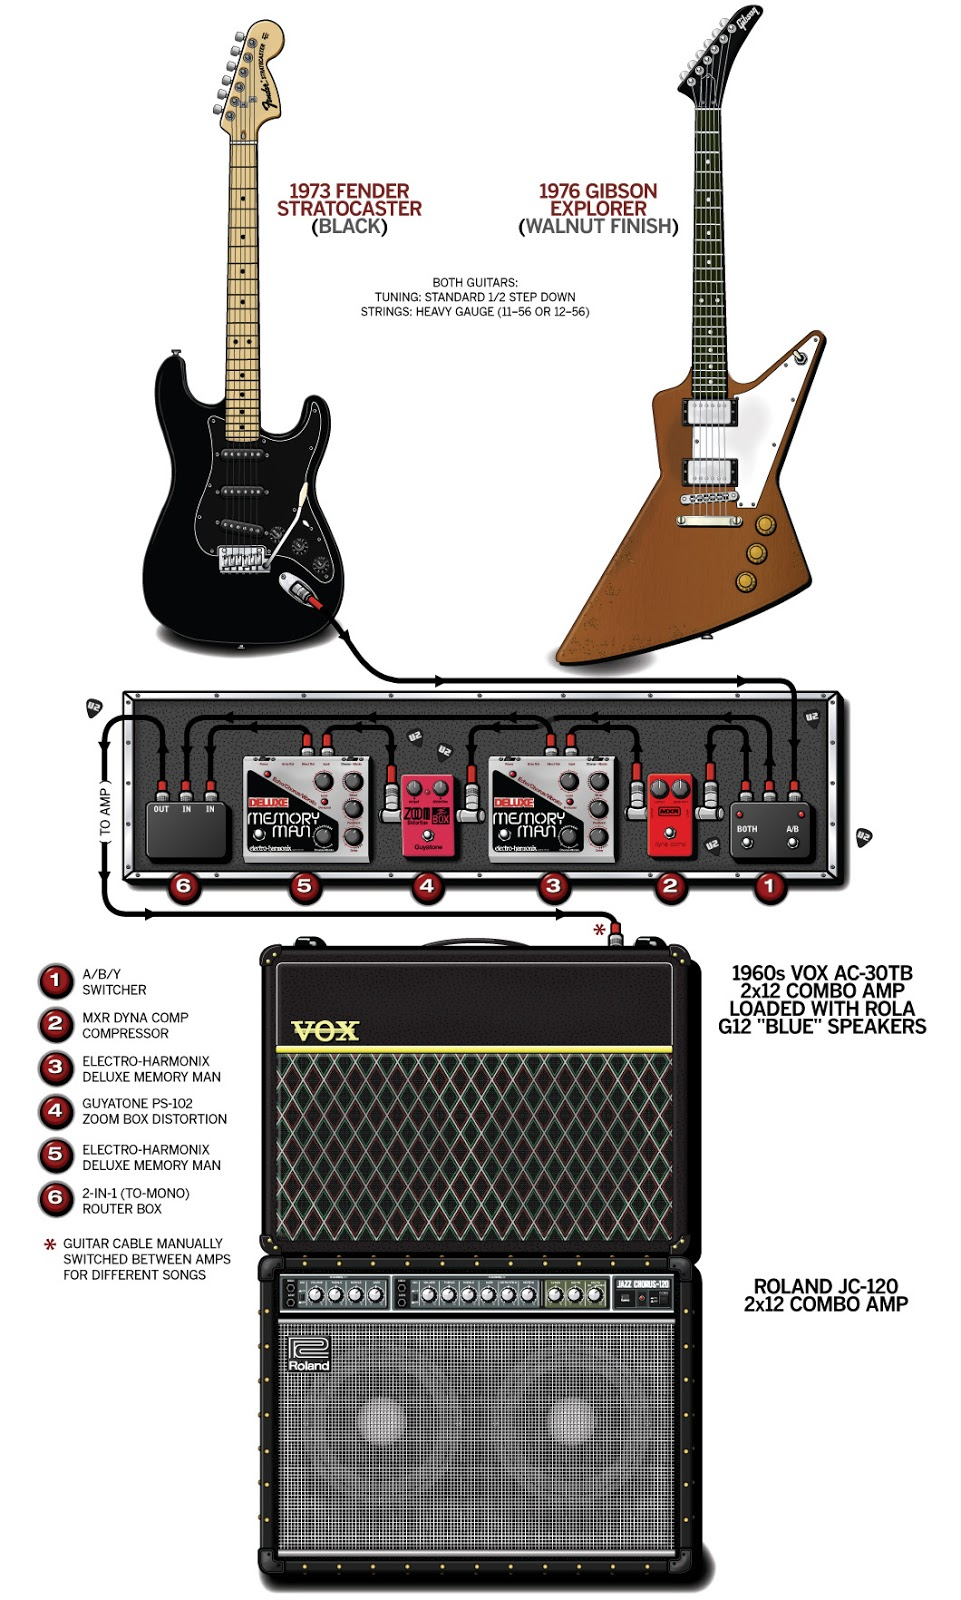 Super Strat Wiring Diagram Jw Guitarworks Schematics Updated As I Find New Examples